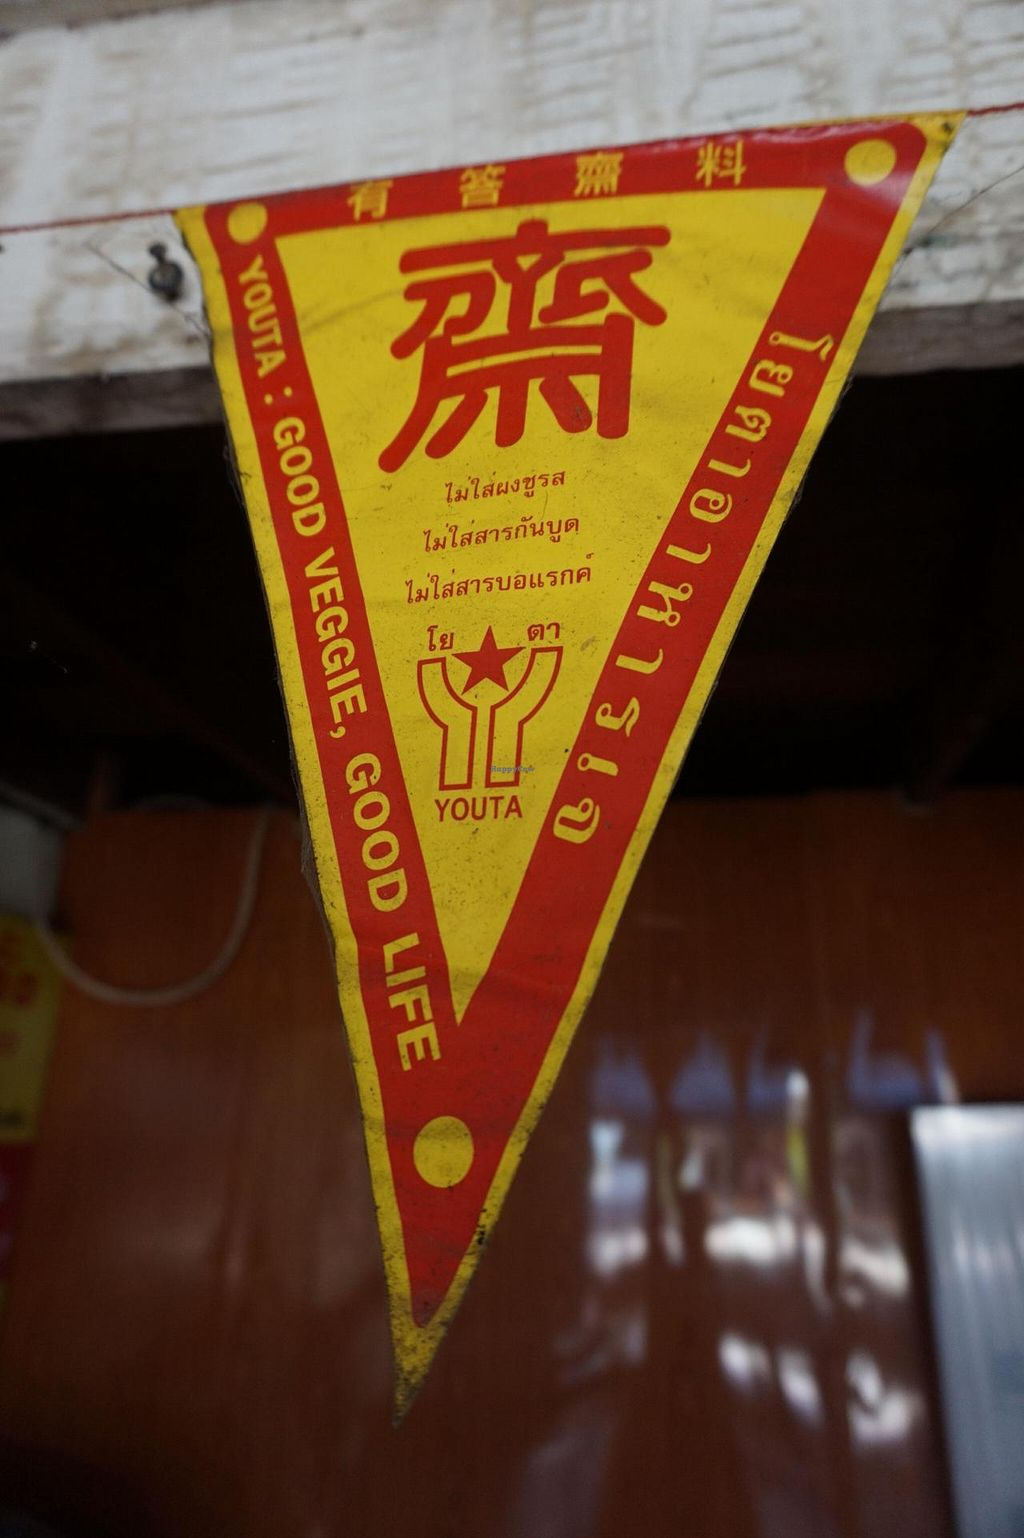 """Photo of Veg Restaurant - Maenam Khwae  by <a href=""""/members/profile/MMaree"""">MMaree</a> <br/>Vegan (tjay) flag with Chinese word <br/> April 4, 2015  - <a href='/contact/abuse/image/57118/97833'>Report</a>"""